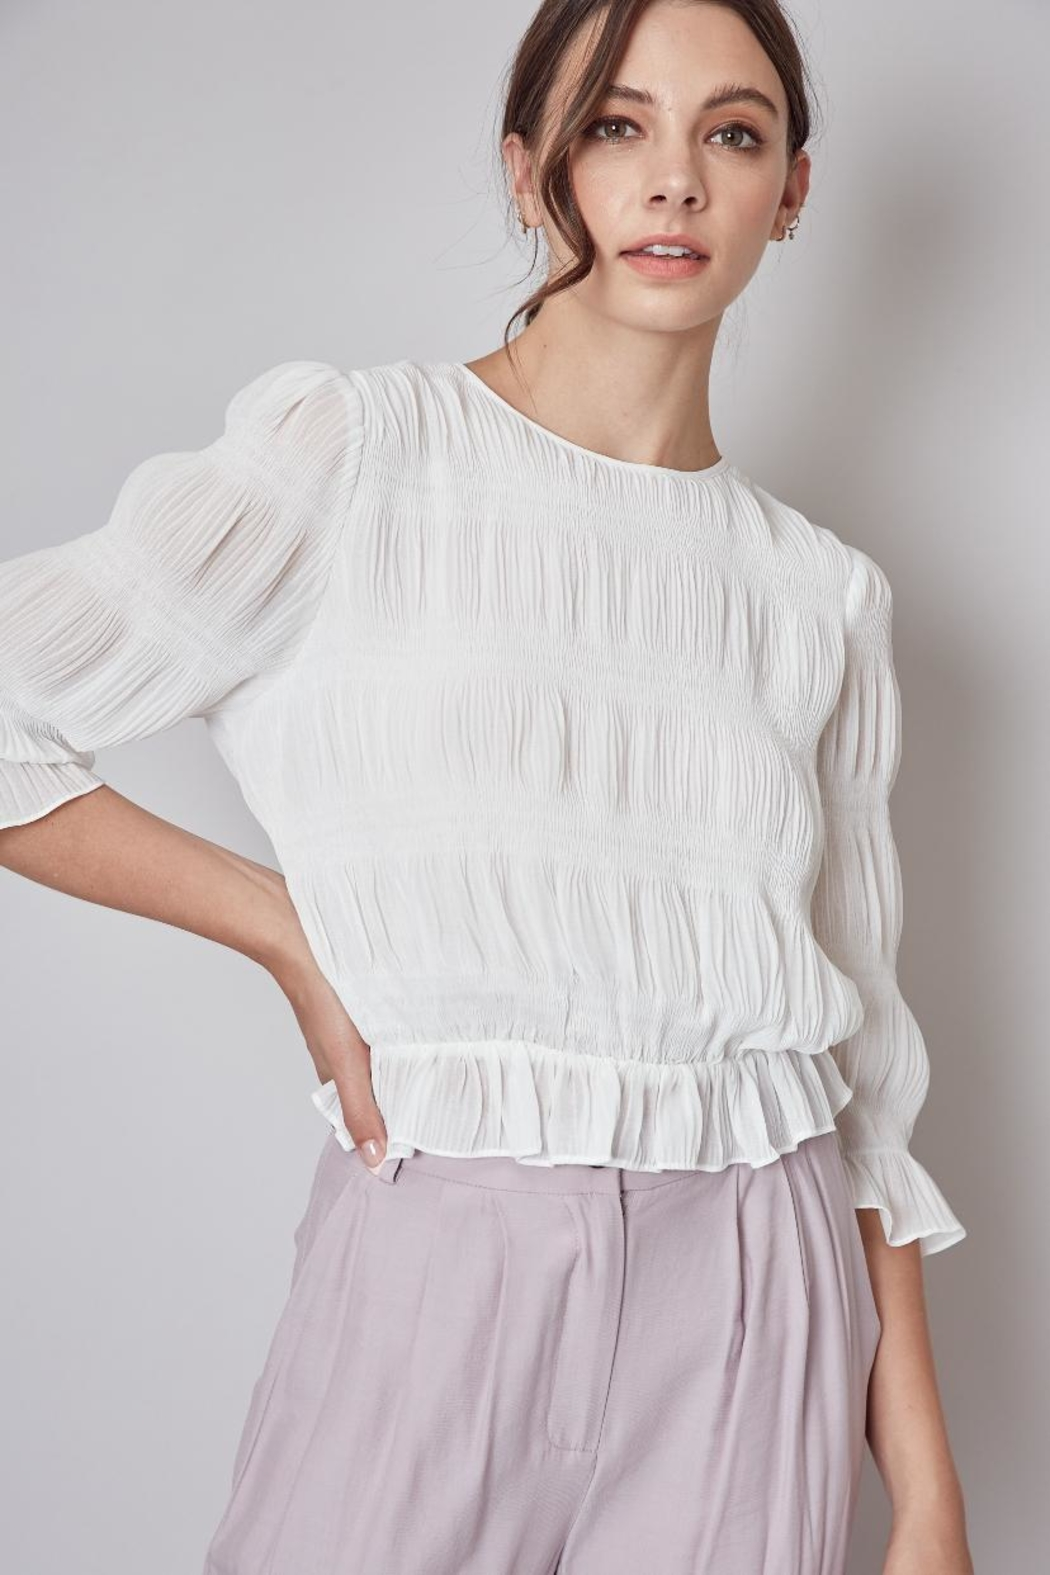 Do & Be Off-White Pleated Top - Front Full Image